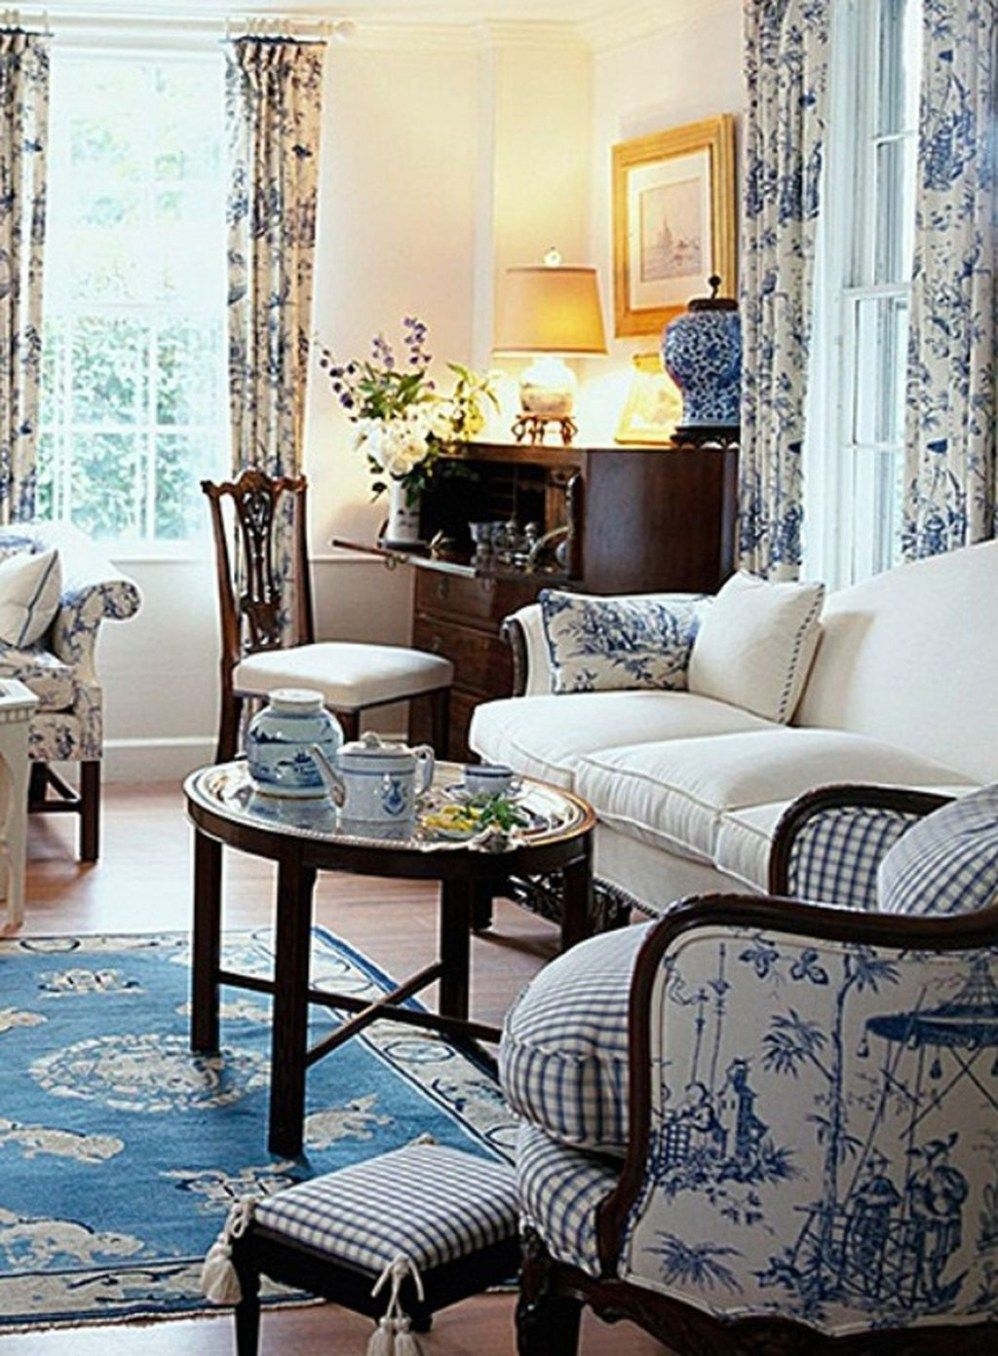 extraordinary french country living room curtains   49 Cozy French Country Living Room Decor Ideas   French ...